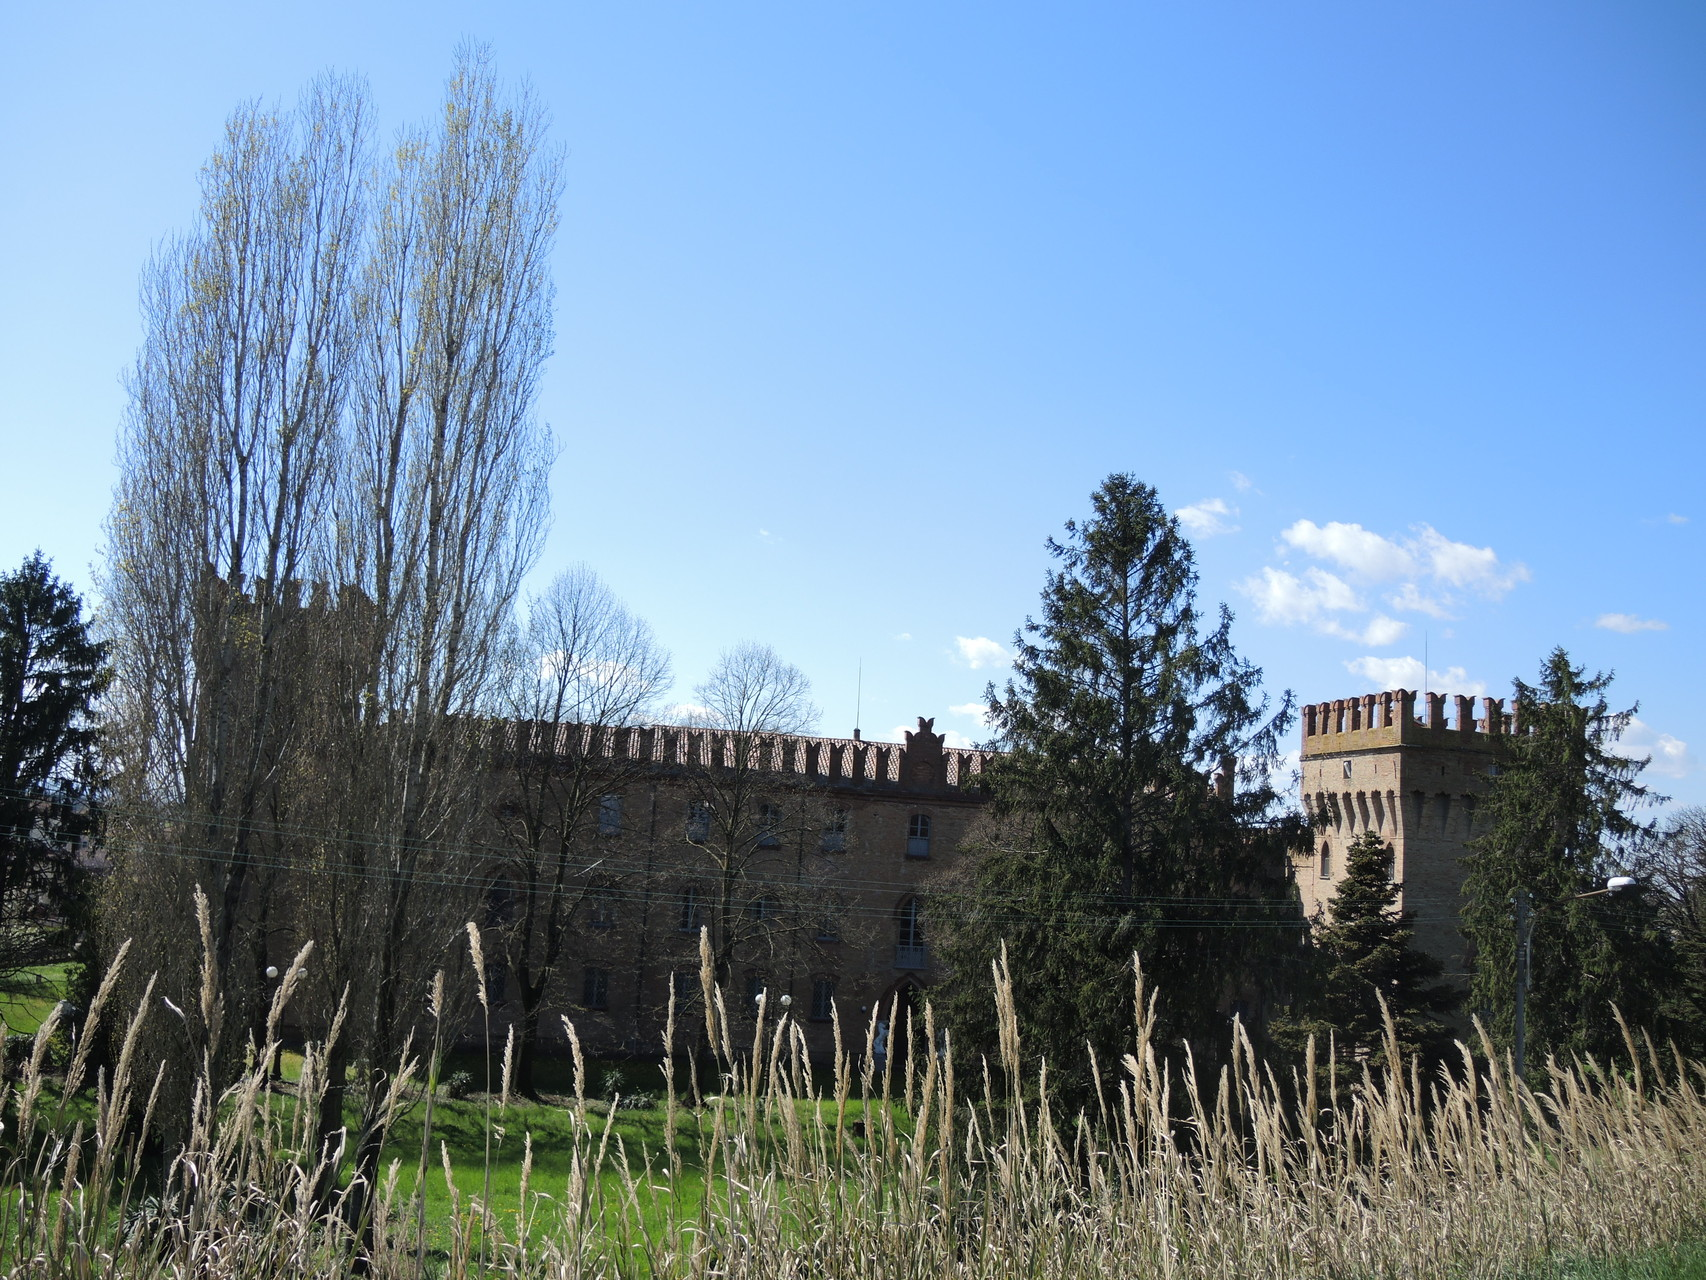 Castello S. M. in Fabriago